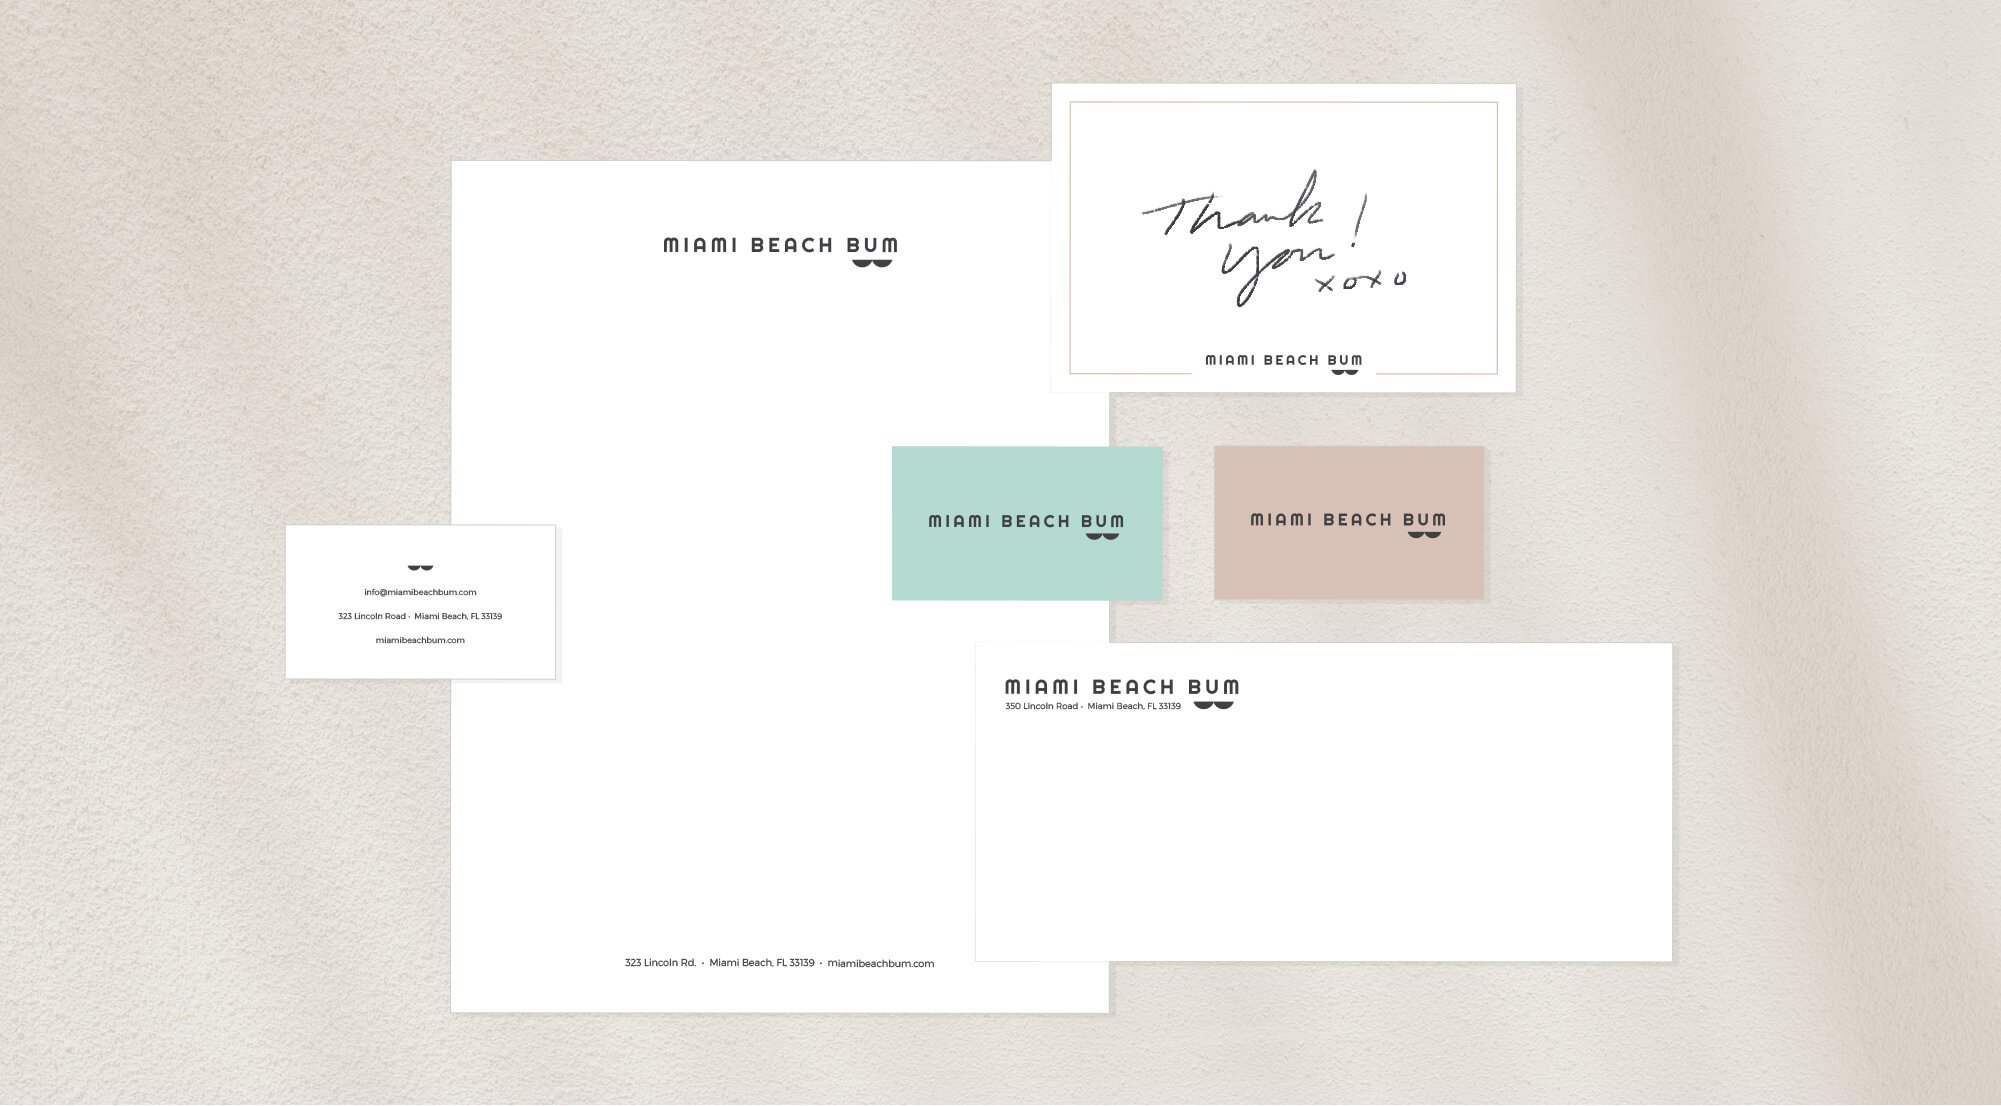 Miami Beach Bum Stationery